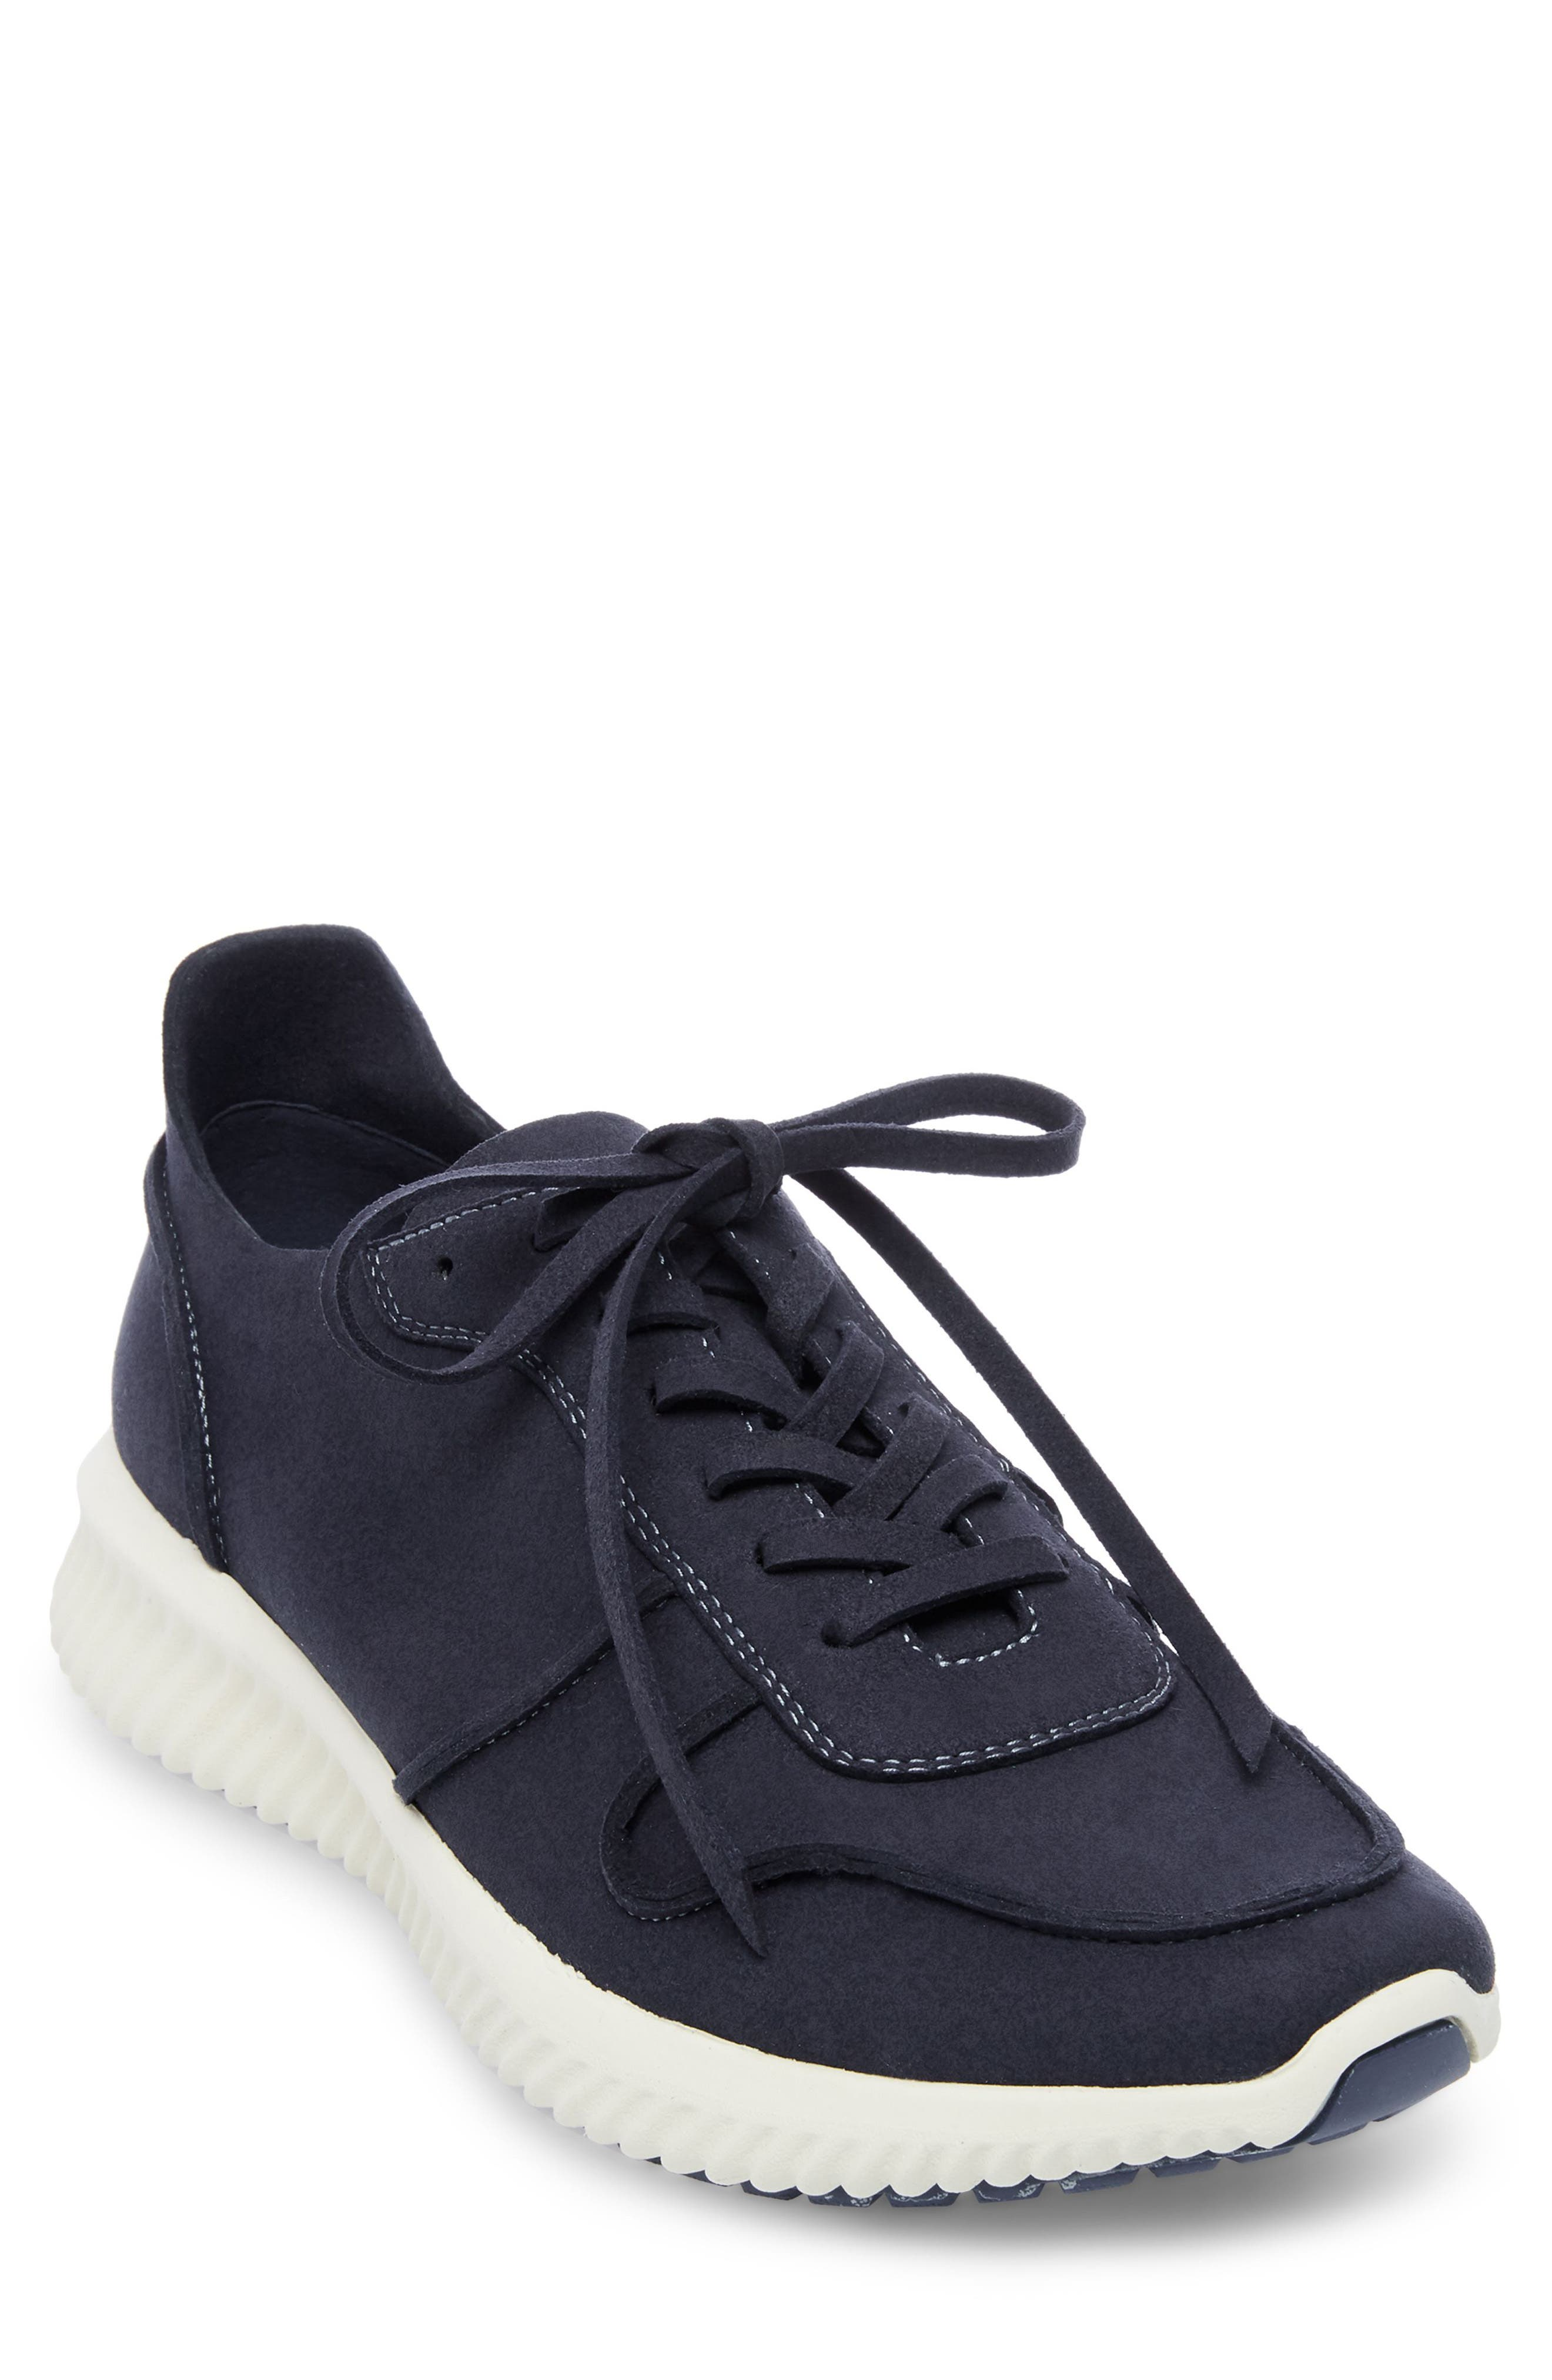 Rolf Low Top Sneaker,                         Main,                         color, Navy Leather